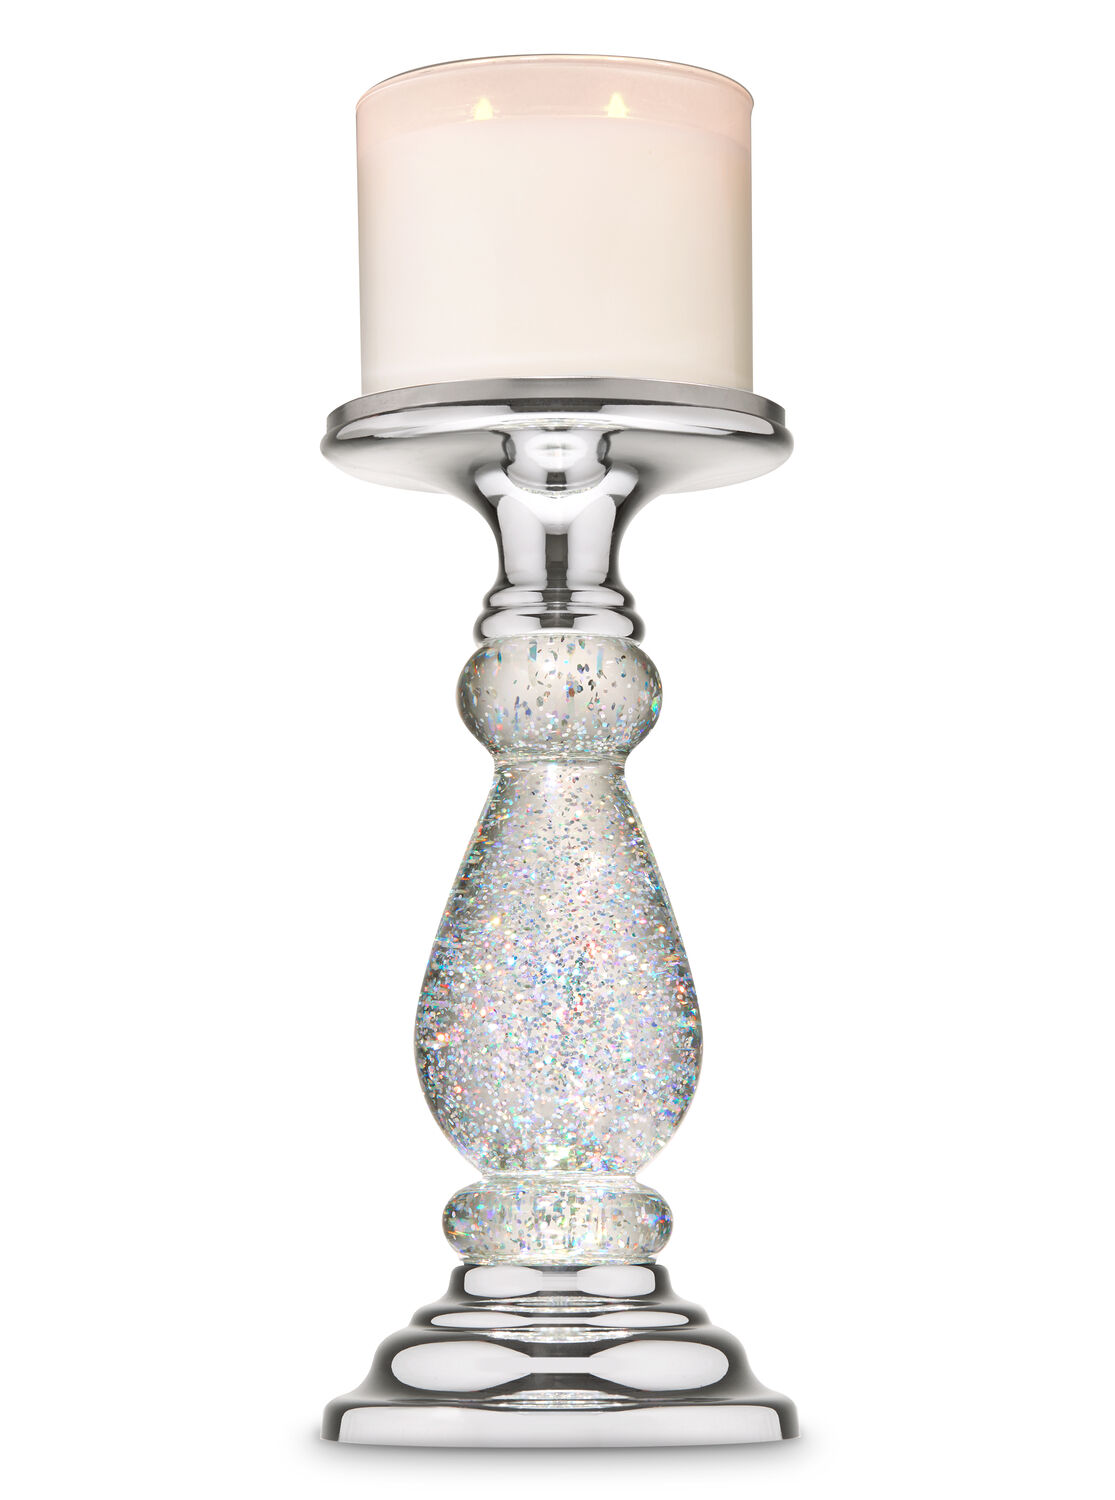 Gold Swirling Glitter Pedestal Bath and Body Works 3-Wick Candle Holder